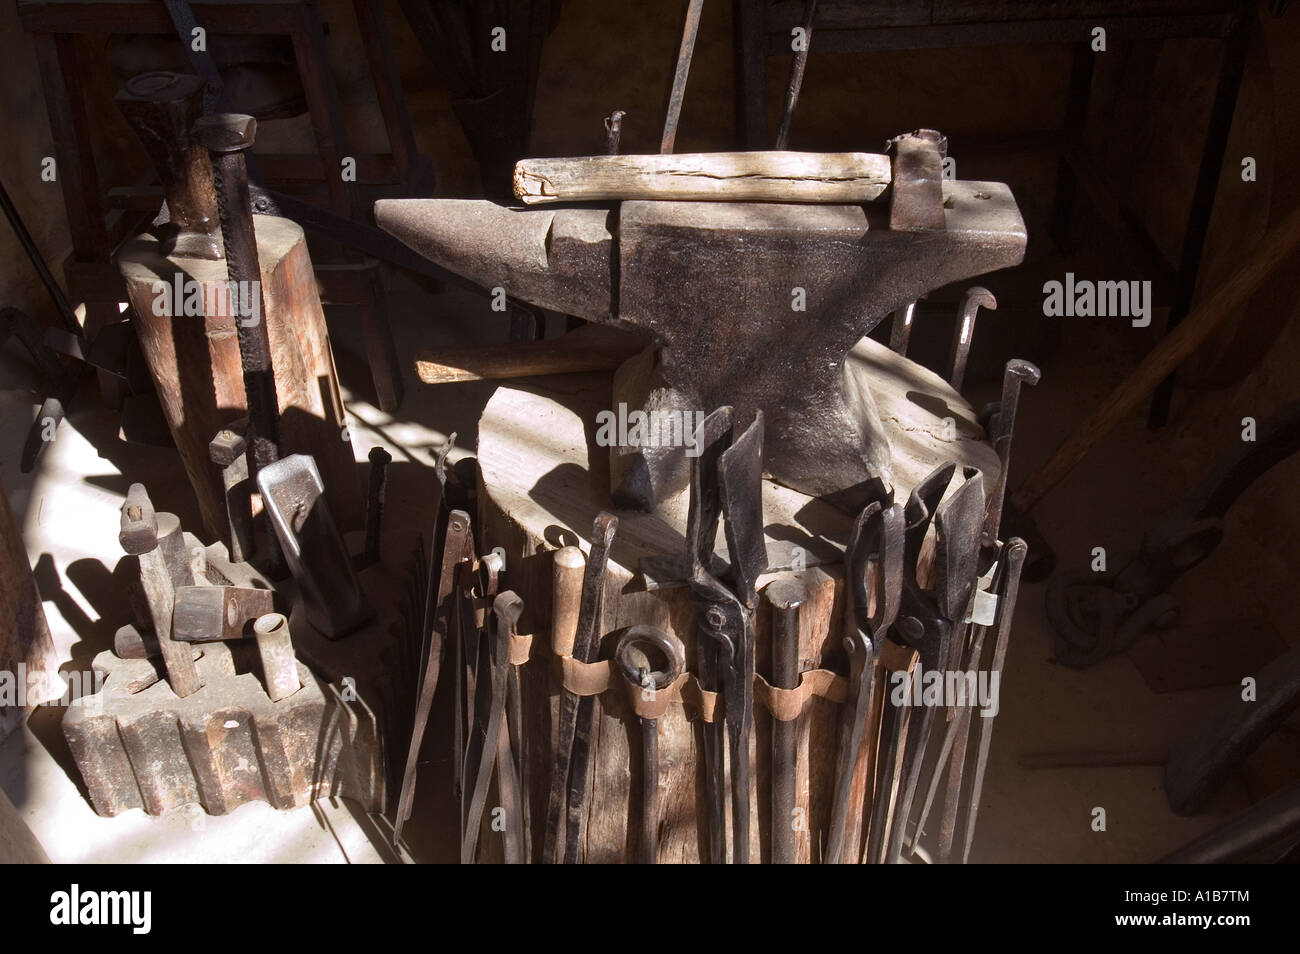 Metalwork workshop - Stock Image